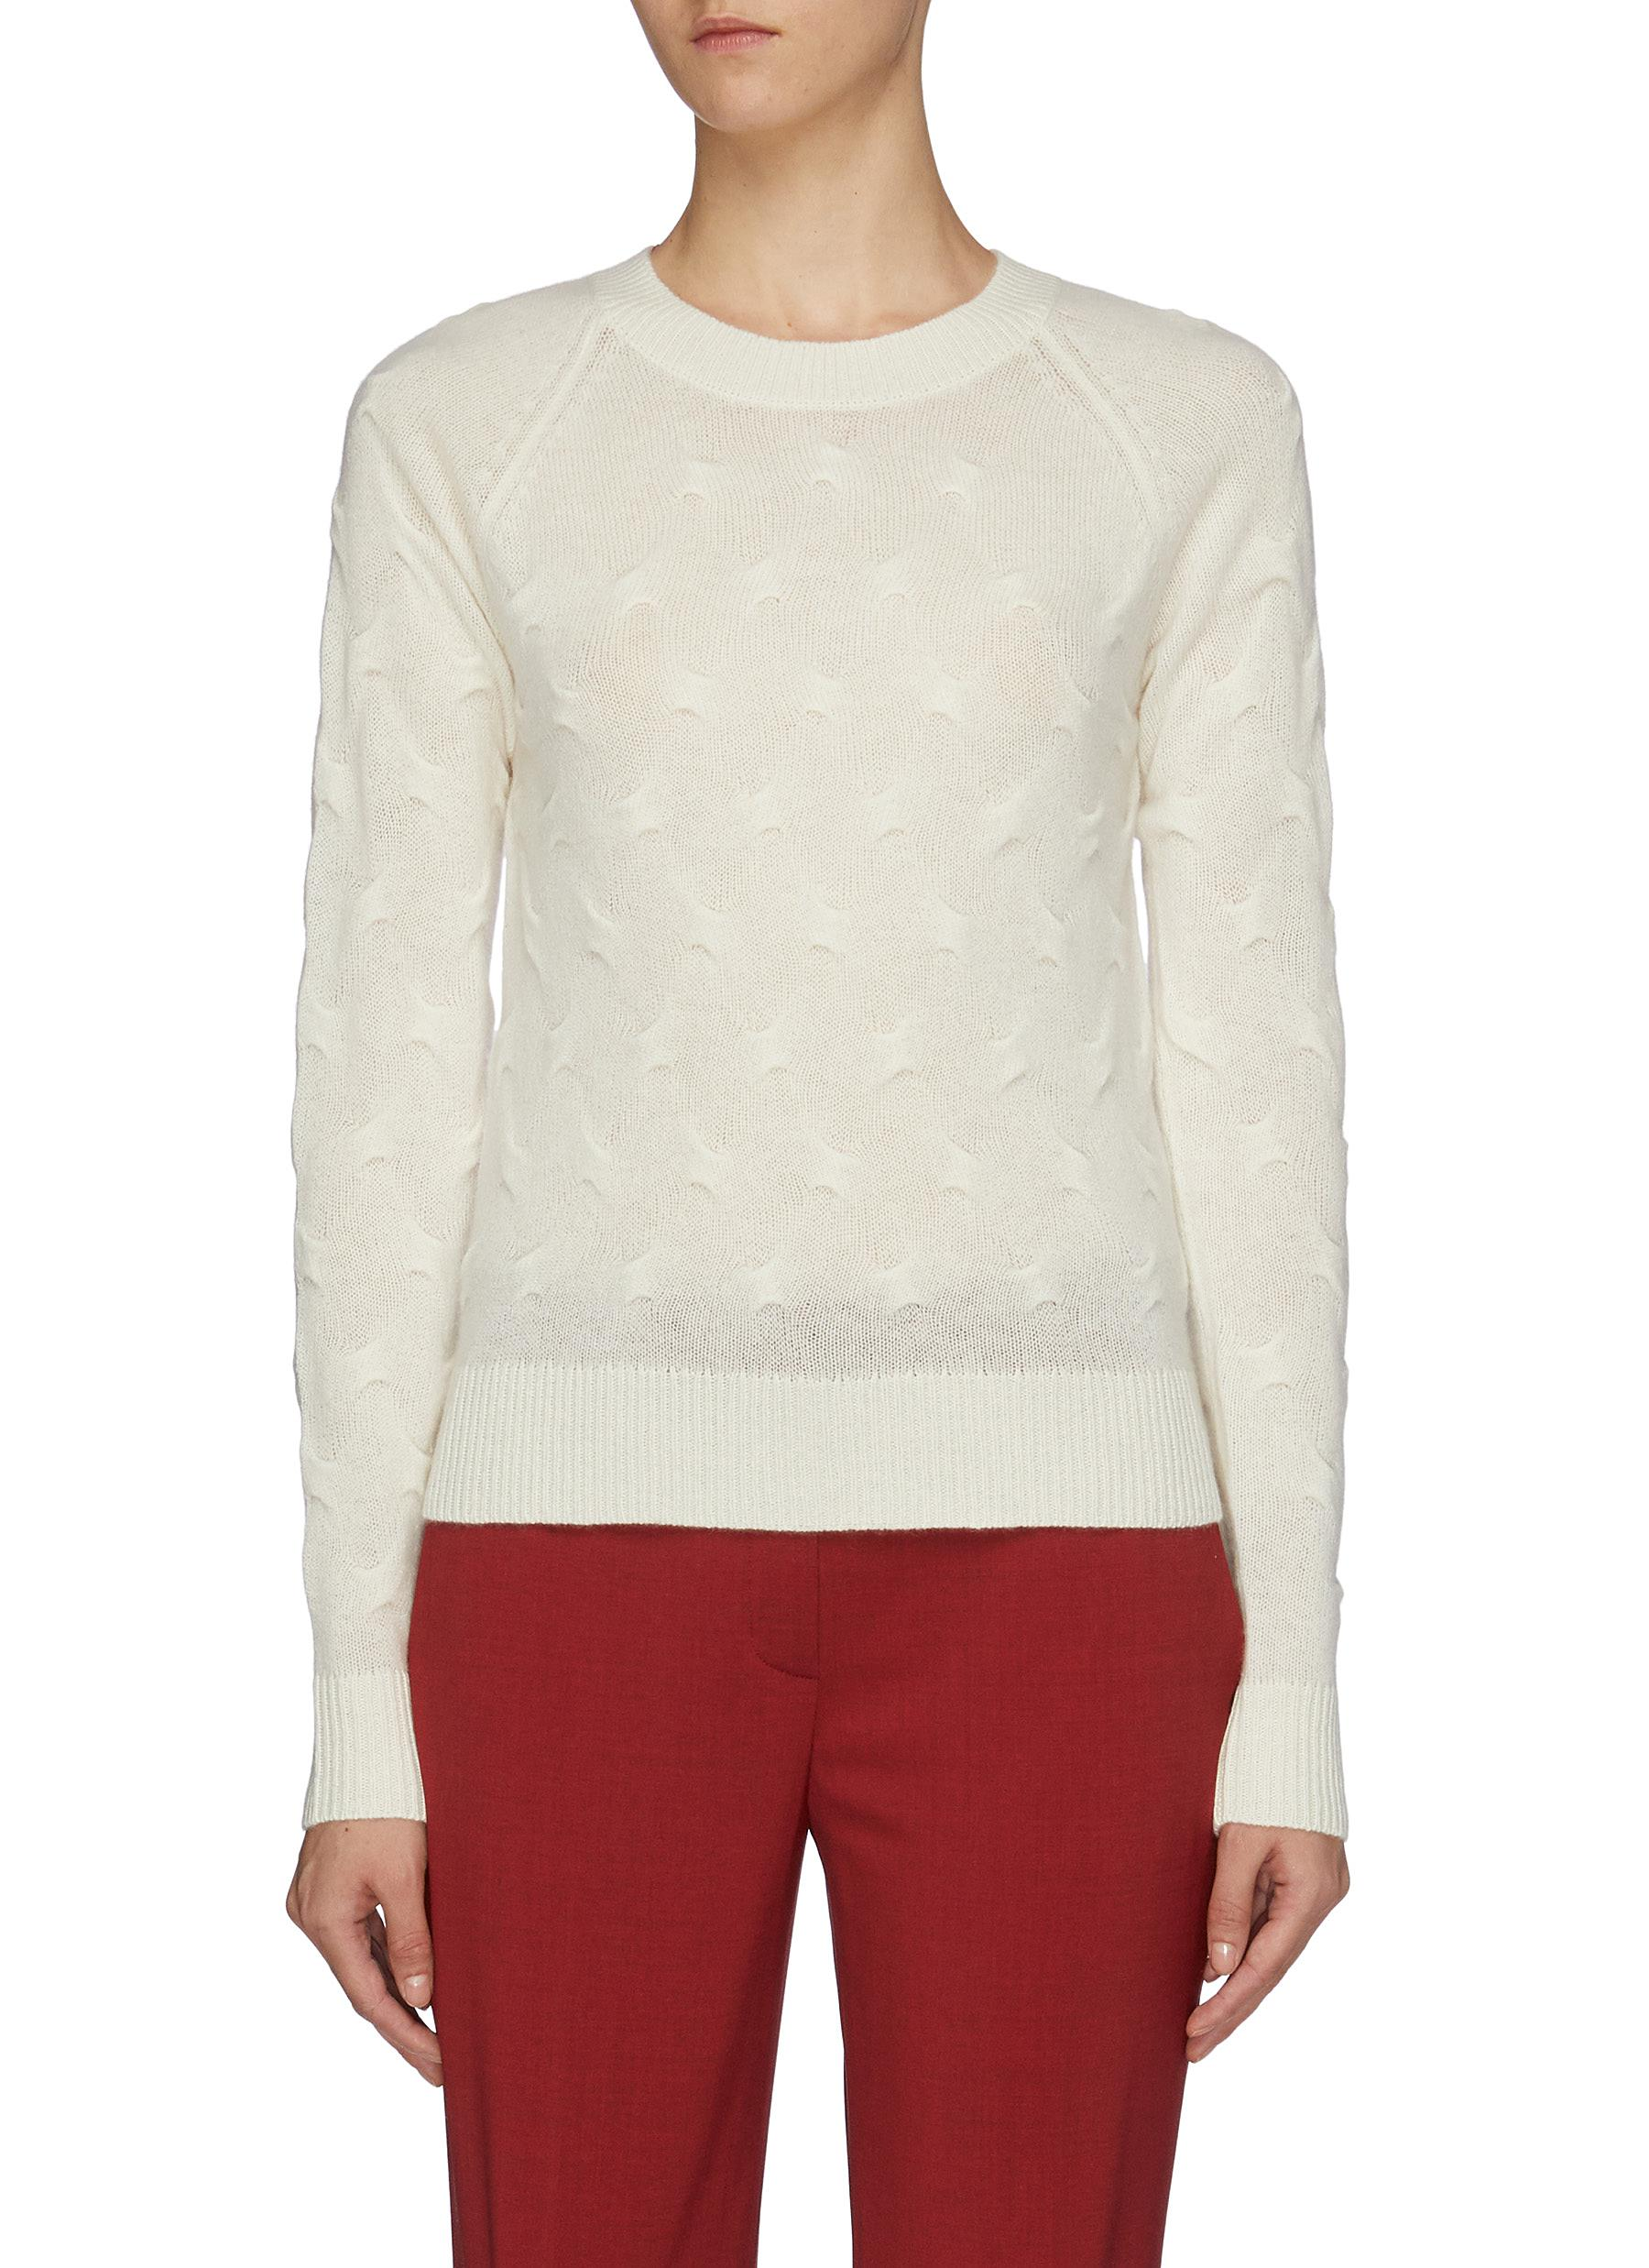 Cashmere tucked stitch knit sweater by Theory